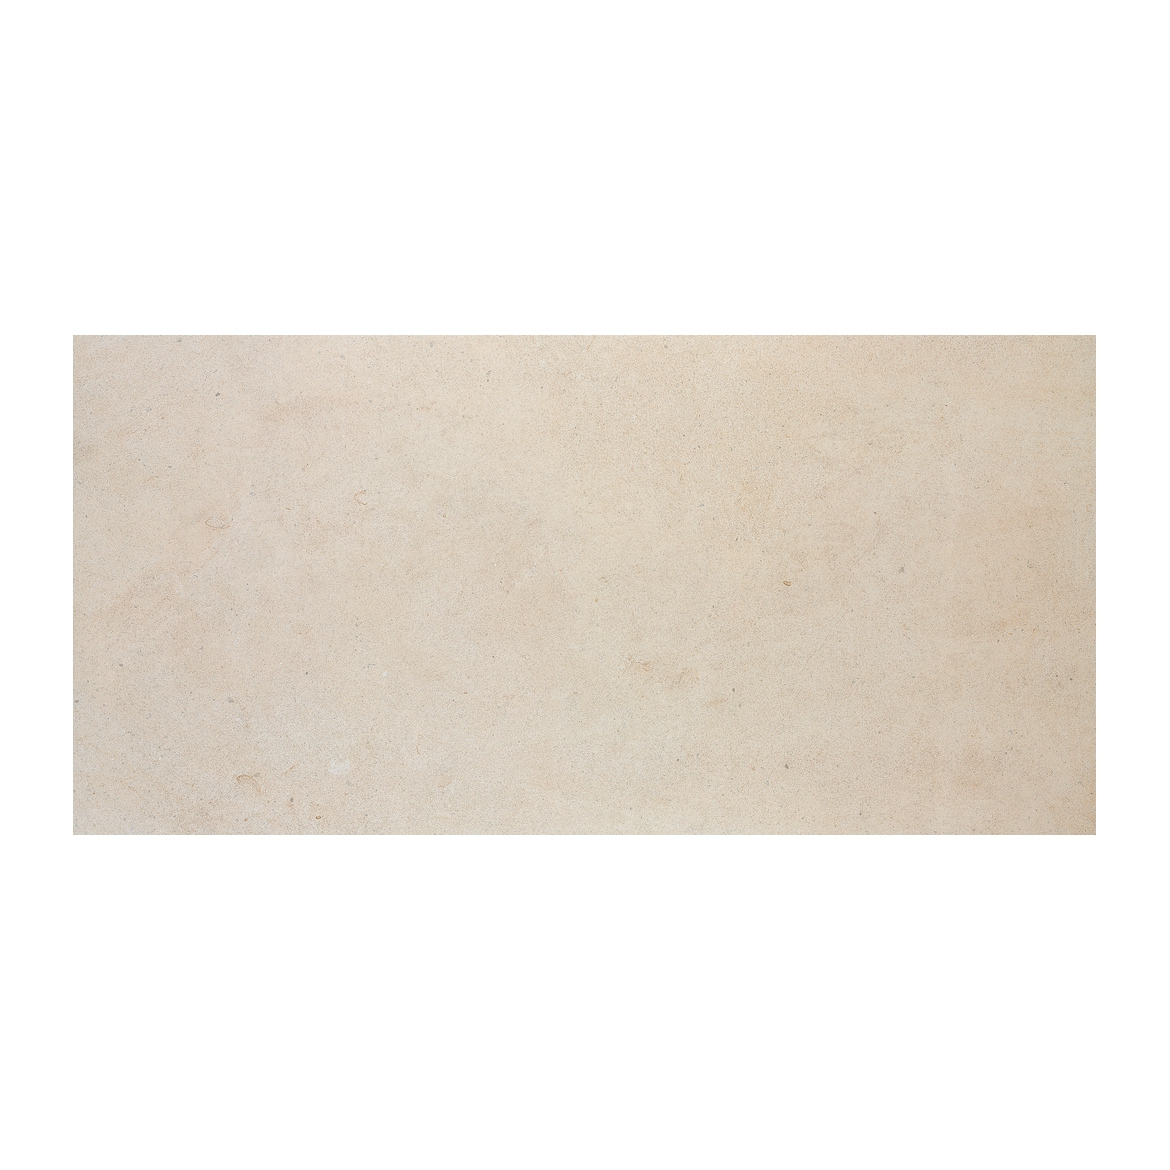 https://cerdesign.pl/3438-large_default/keraben-beauval-crema-natural-100-x-50-cm.jpg